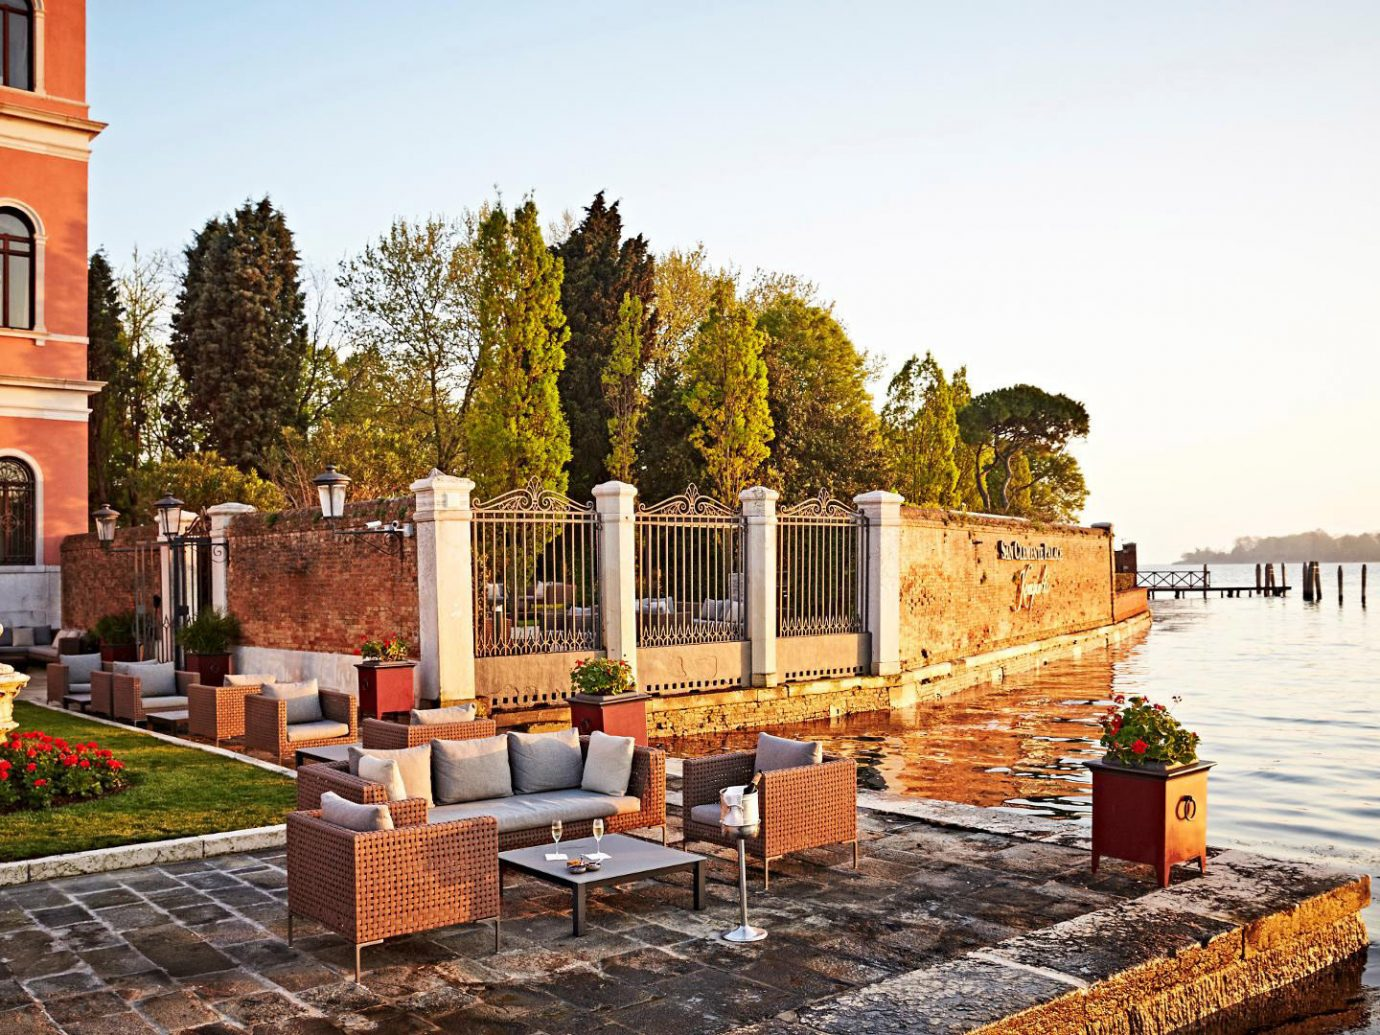 Hotels Italy Luxury Travel Venice outdoor sky Town tourism vacation waterway travel stone